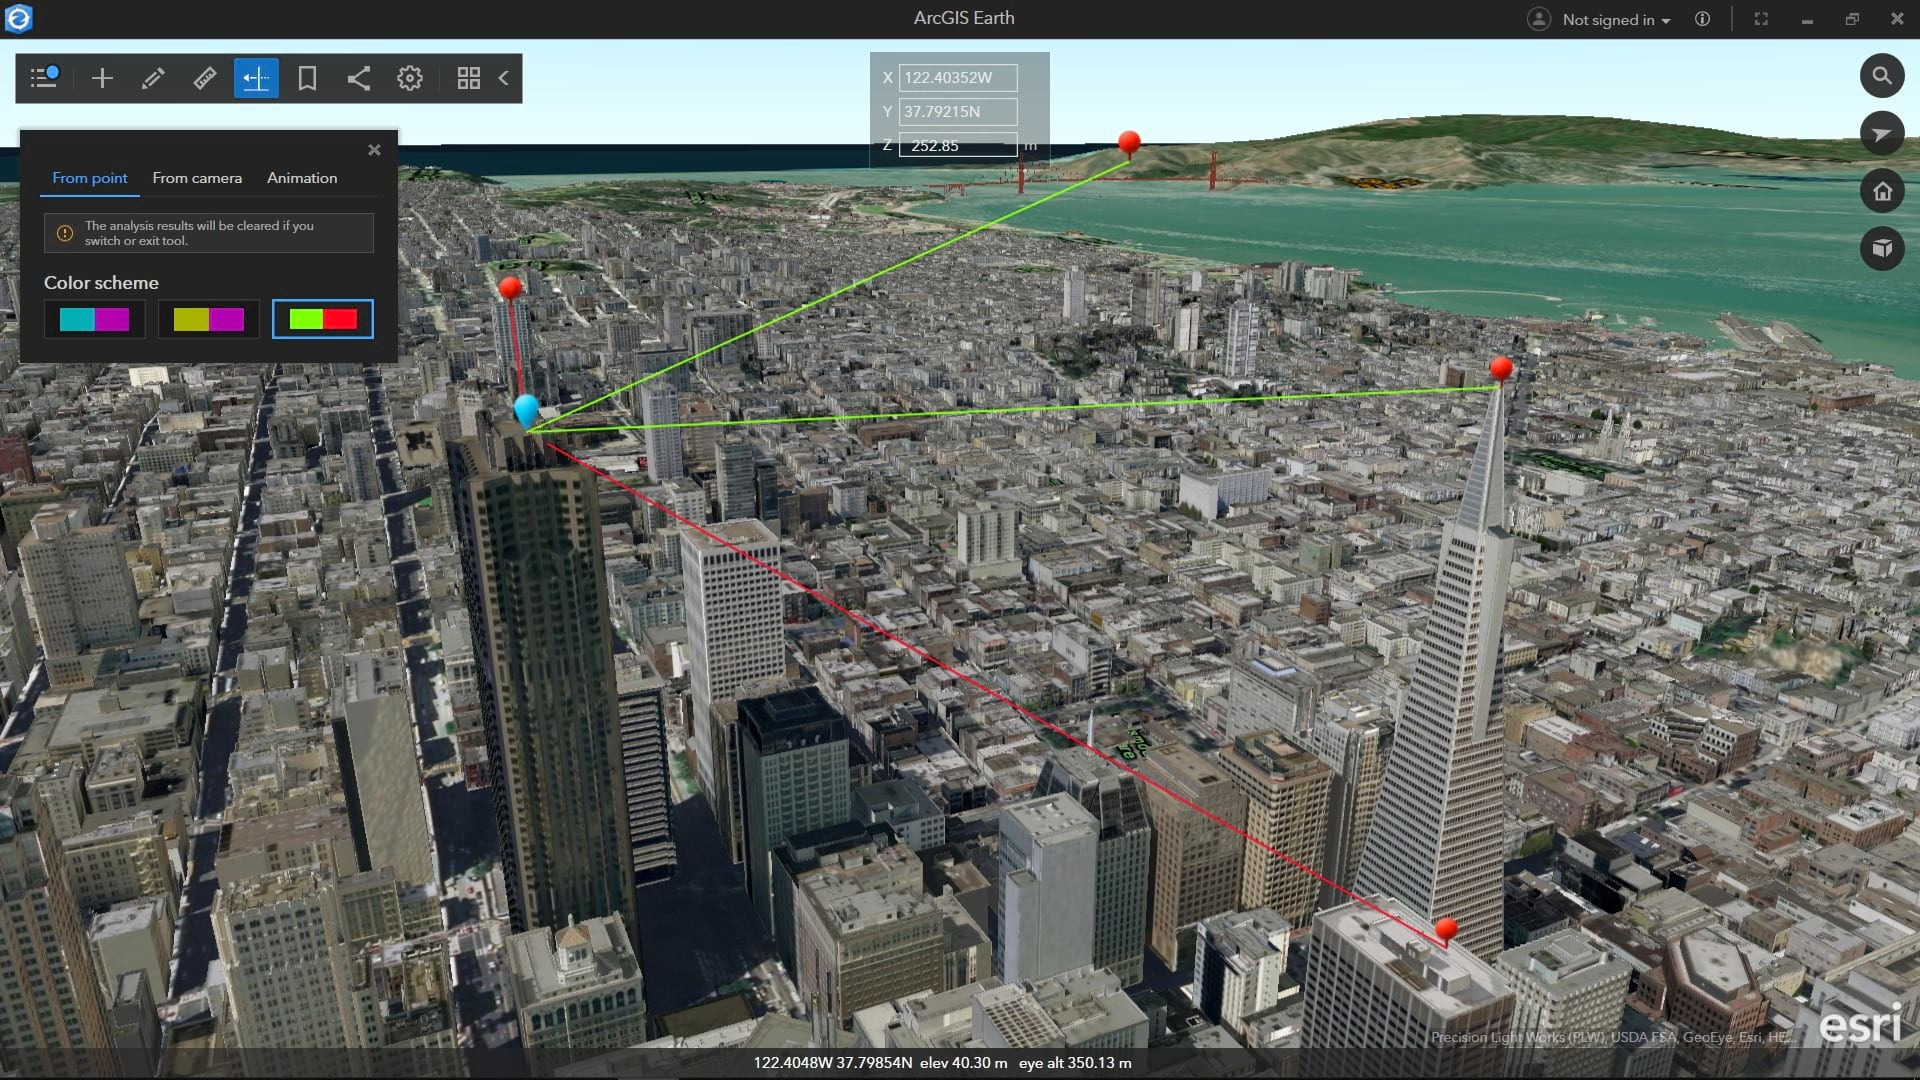 Using I3S layers with interactive analysis tools in ArcGIS Earth